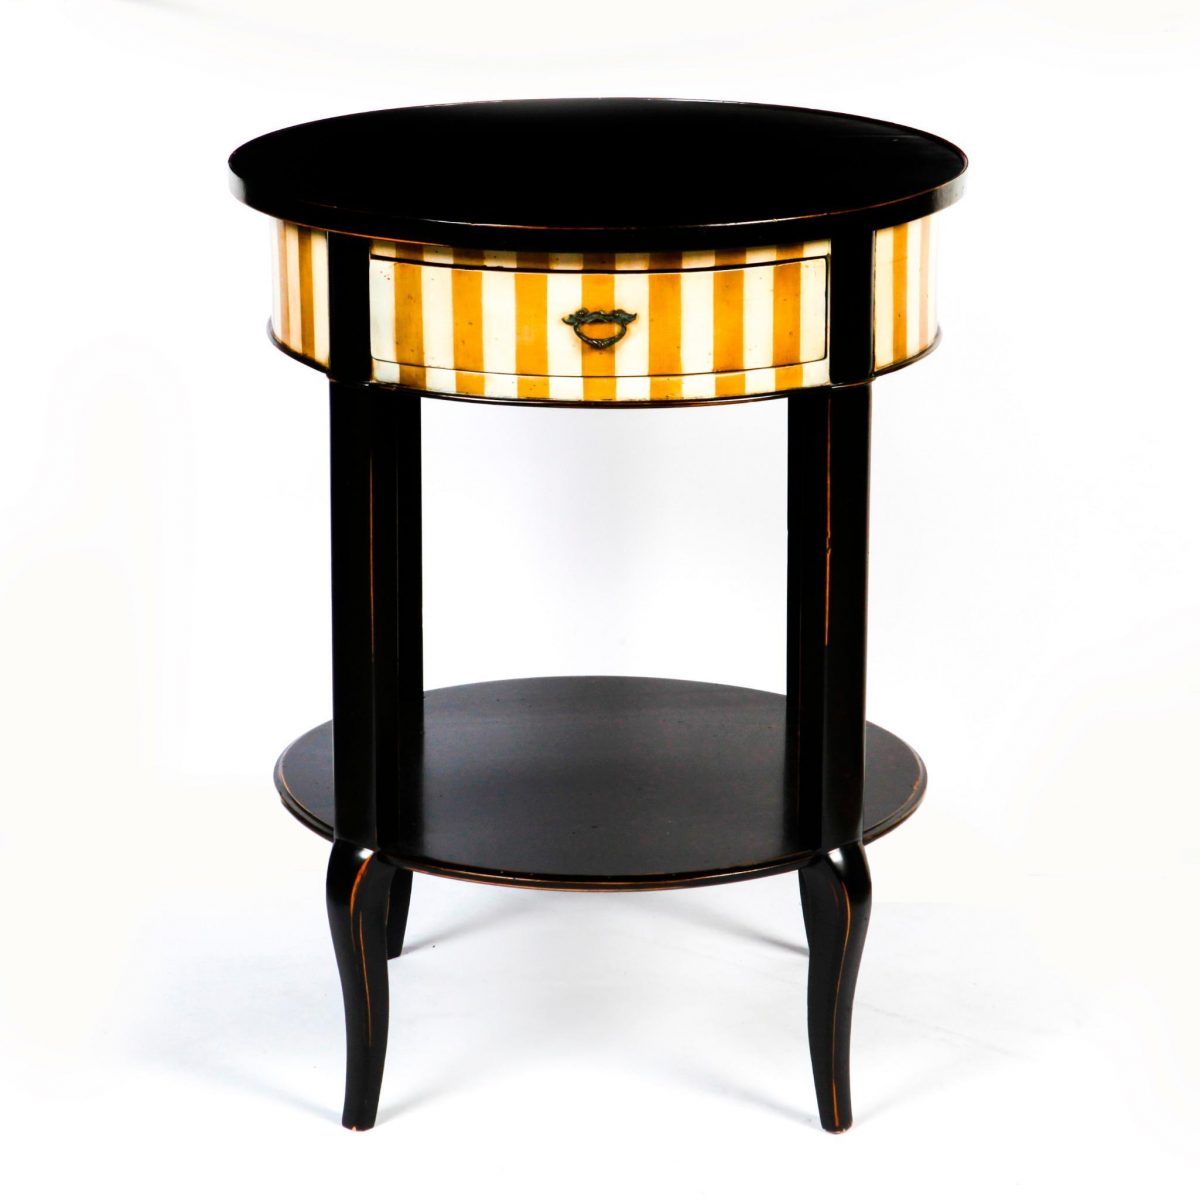 A round end table with dark finish and white and gold vertical stripes.